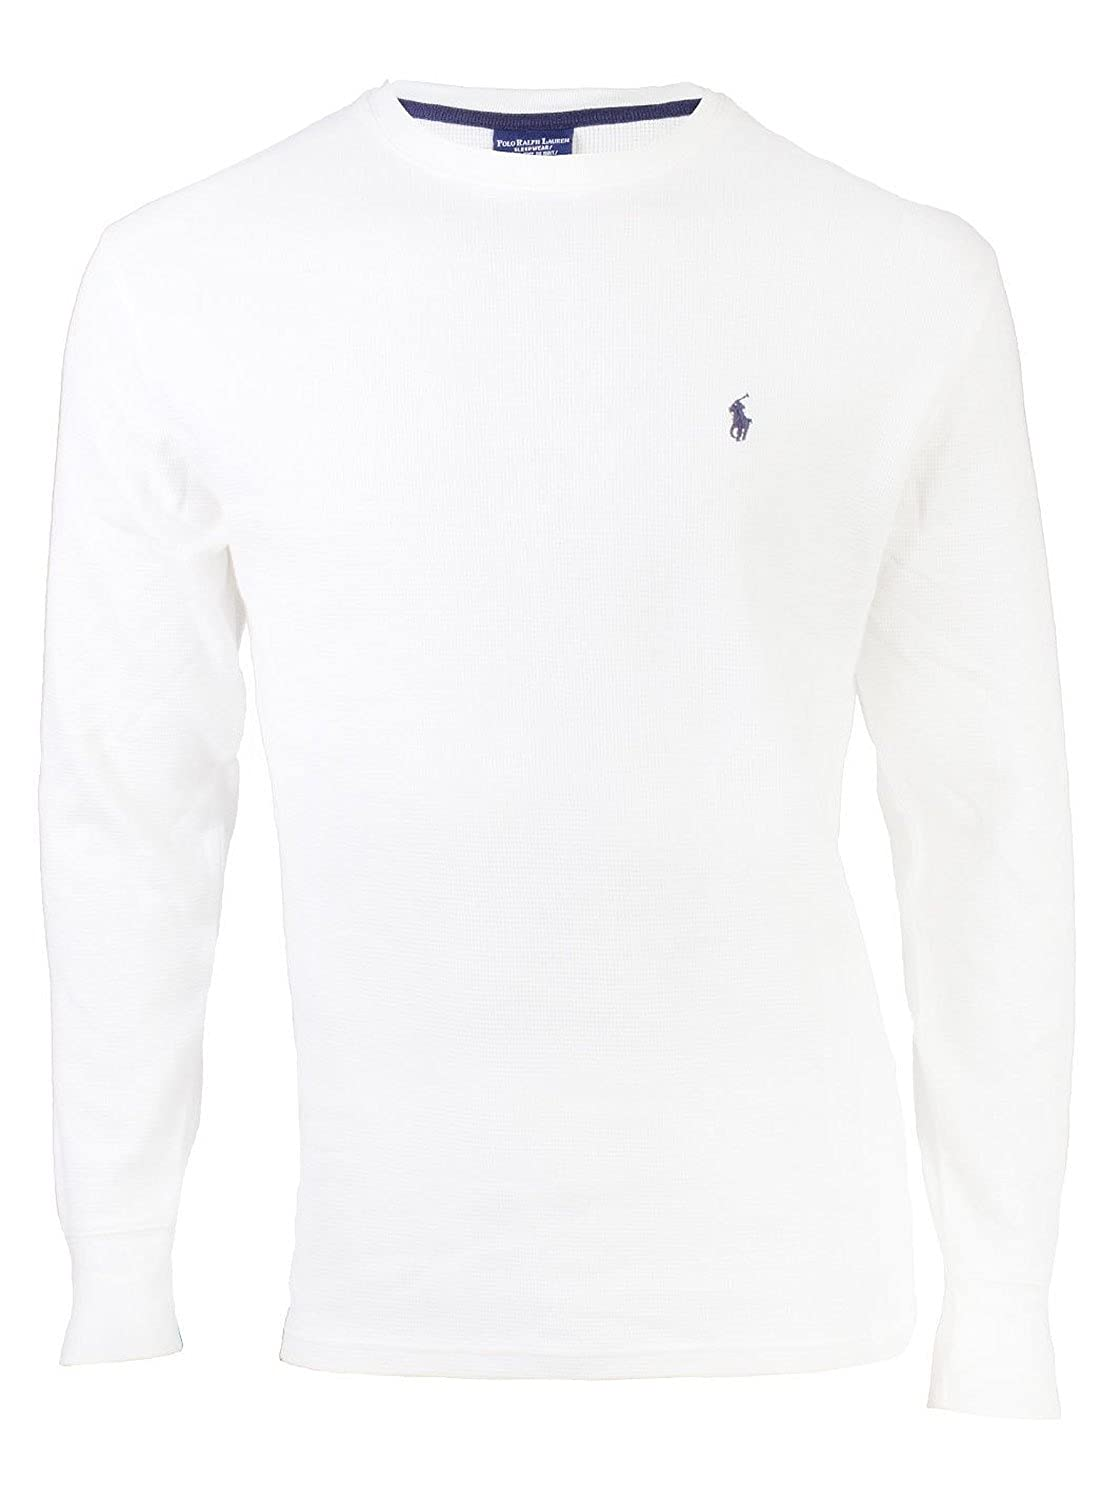 Polo Ralph Lauren Men's Thermal Waffle-Knit Sleep/Lounge Shirt